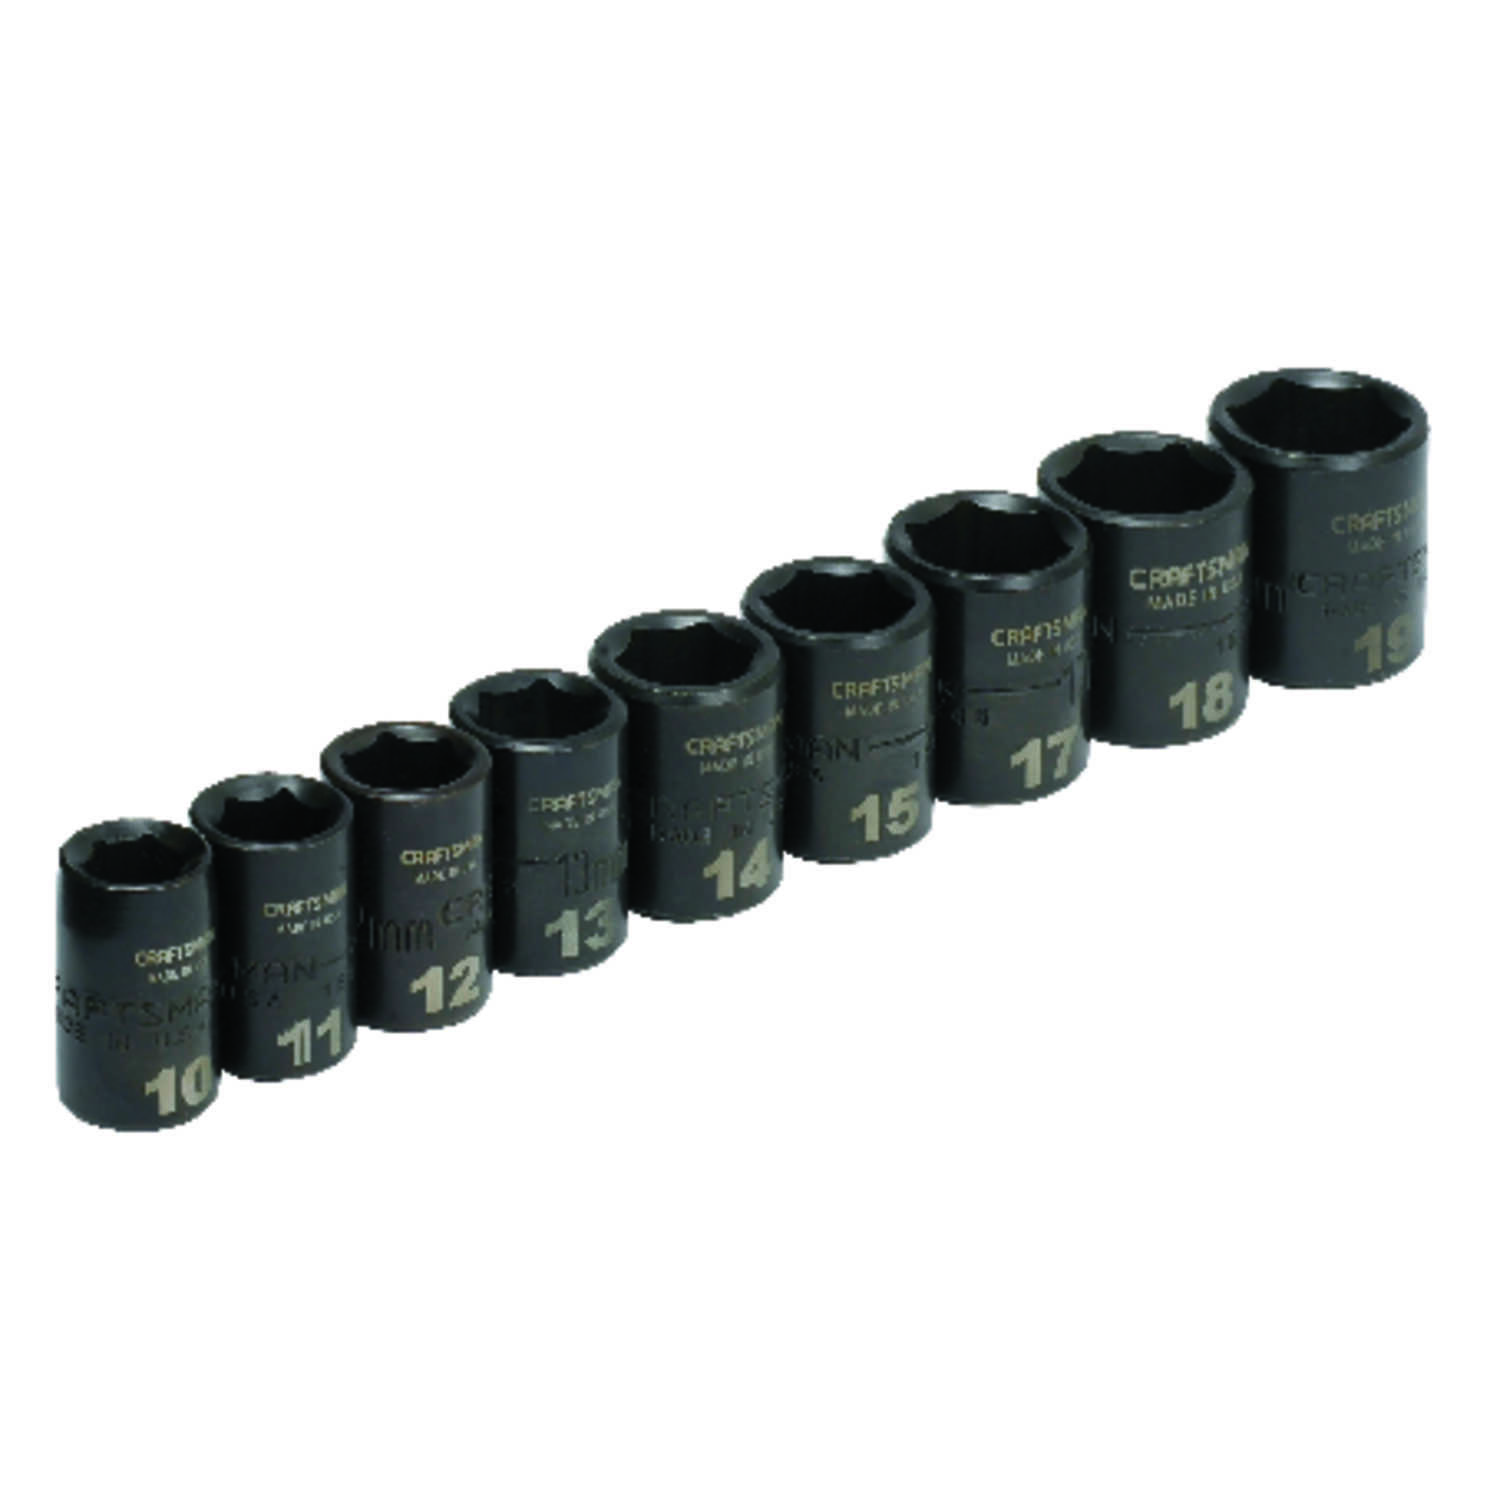 Craftsman  Easy-to-Read  19 mm  x 3/8 in. drive  Metric  6 Point Impact Socket Set  9 pc.